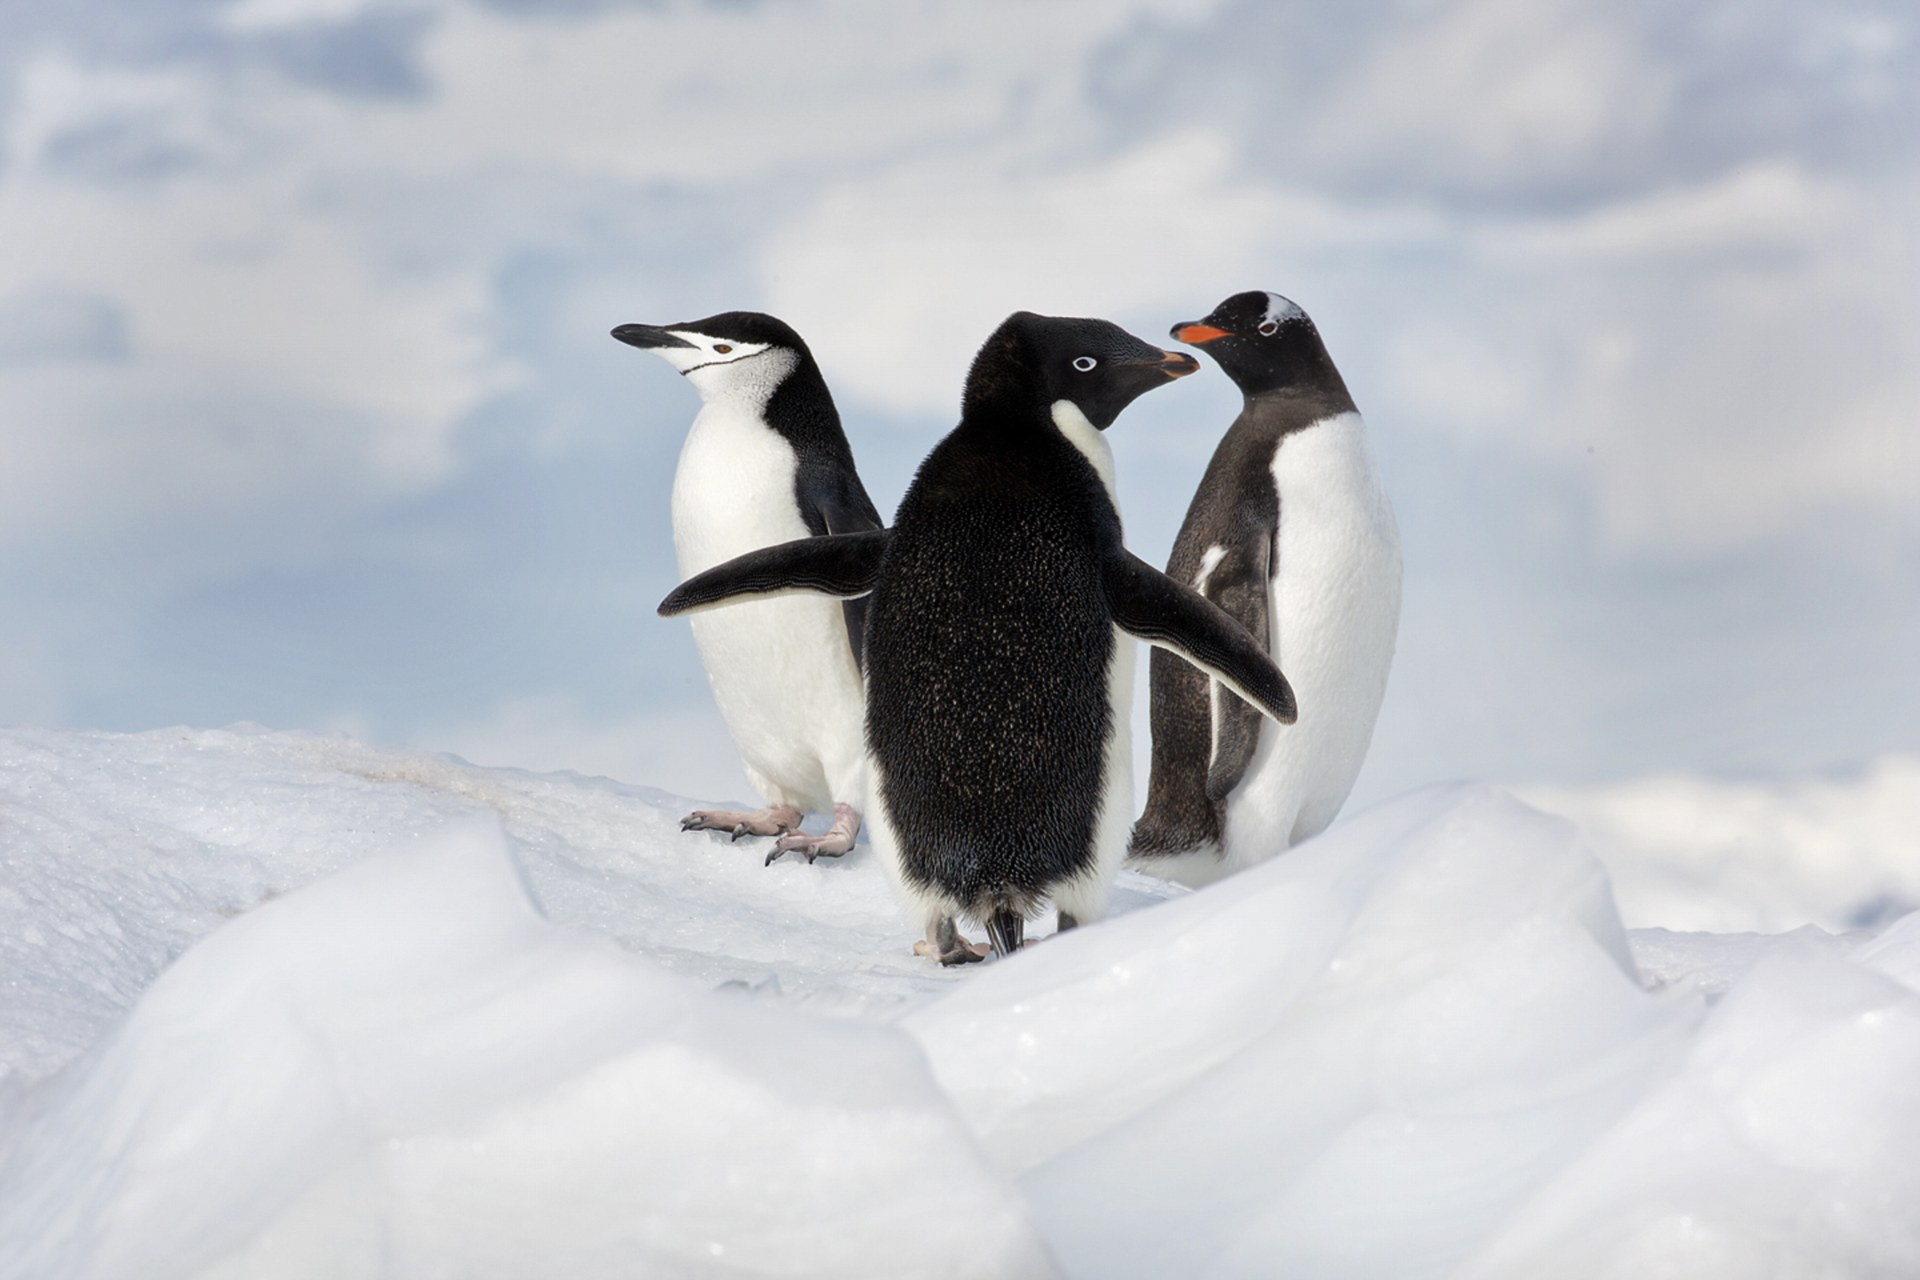 photographer ira meyer antarctica photo collection 9